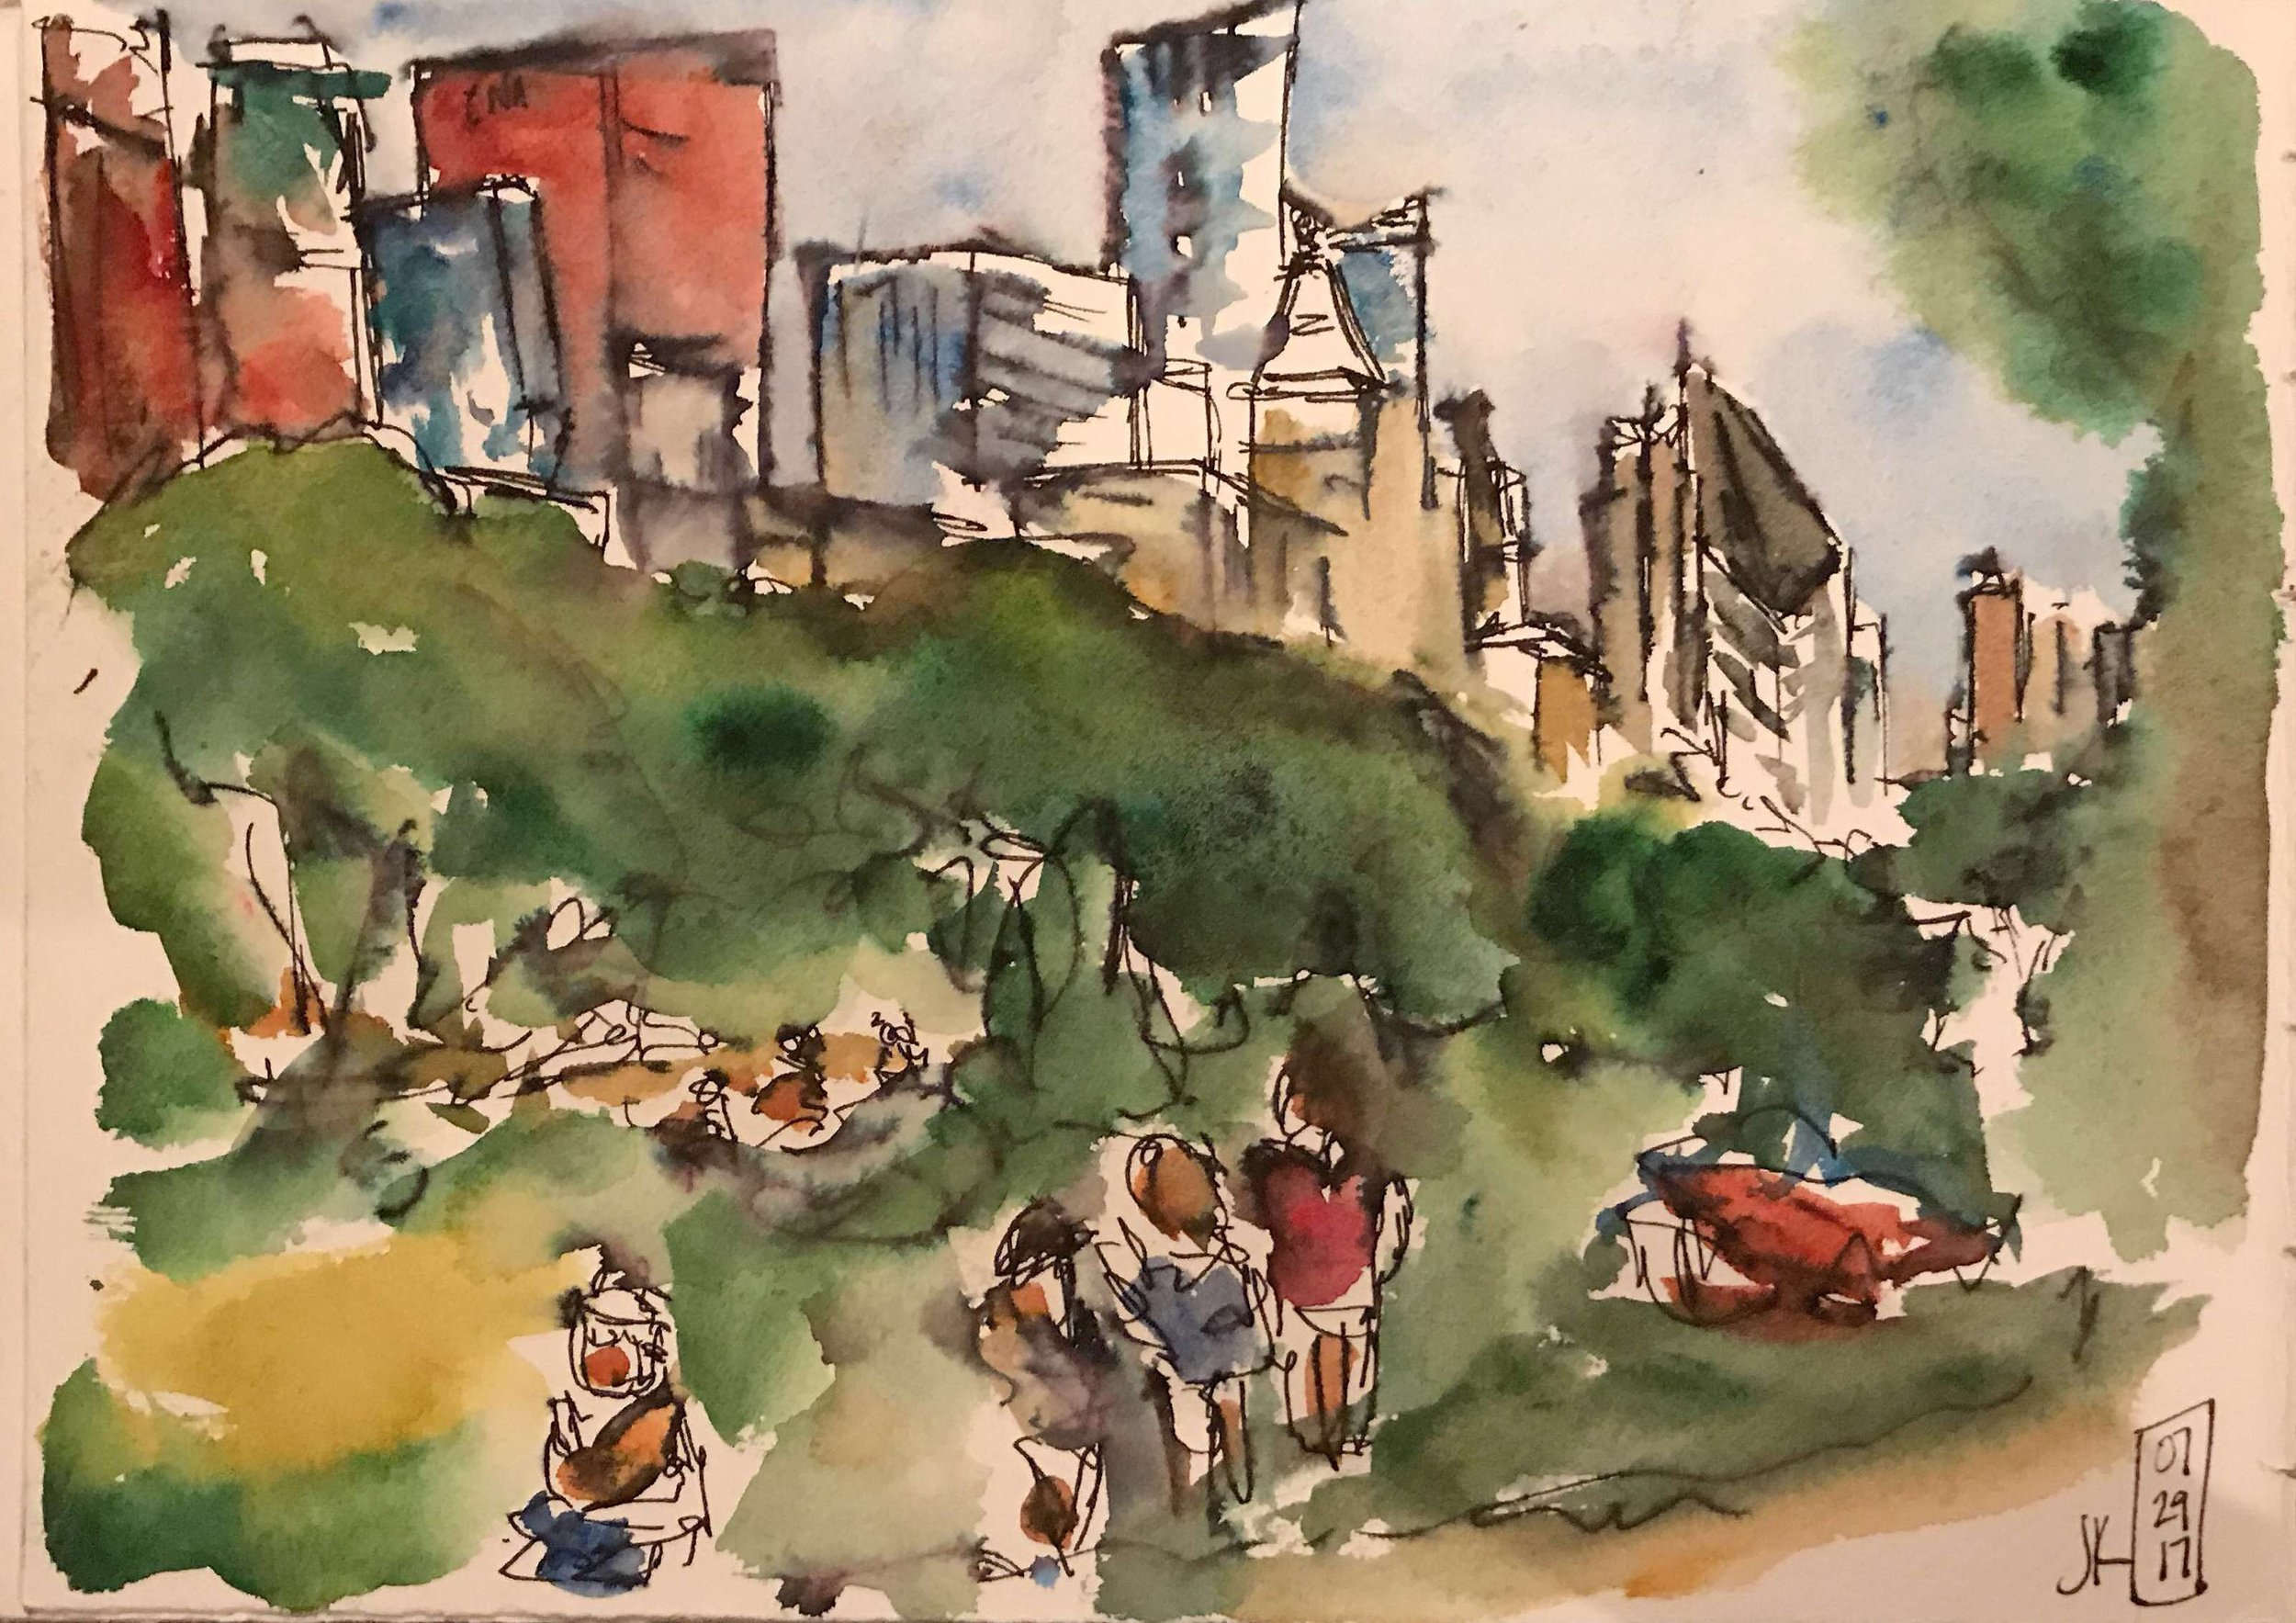 Our last sketch crawl - this sketch was done in 15 minutes